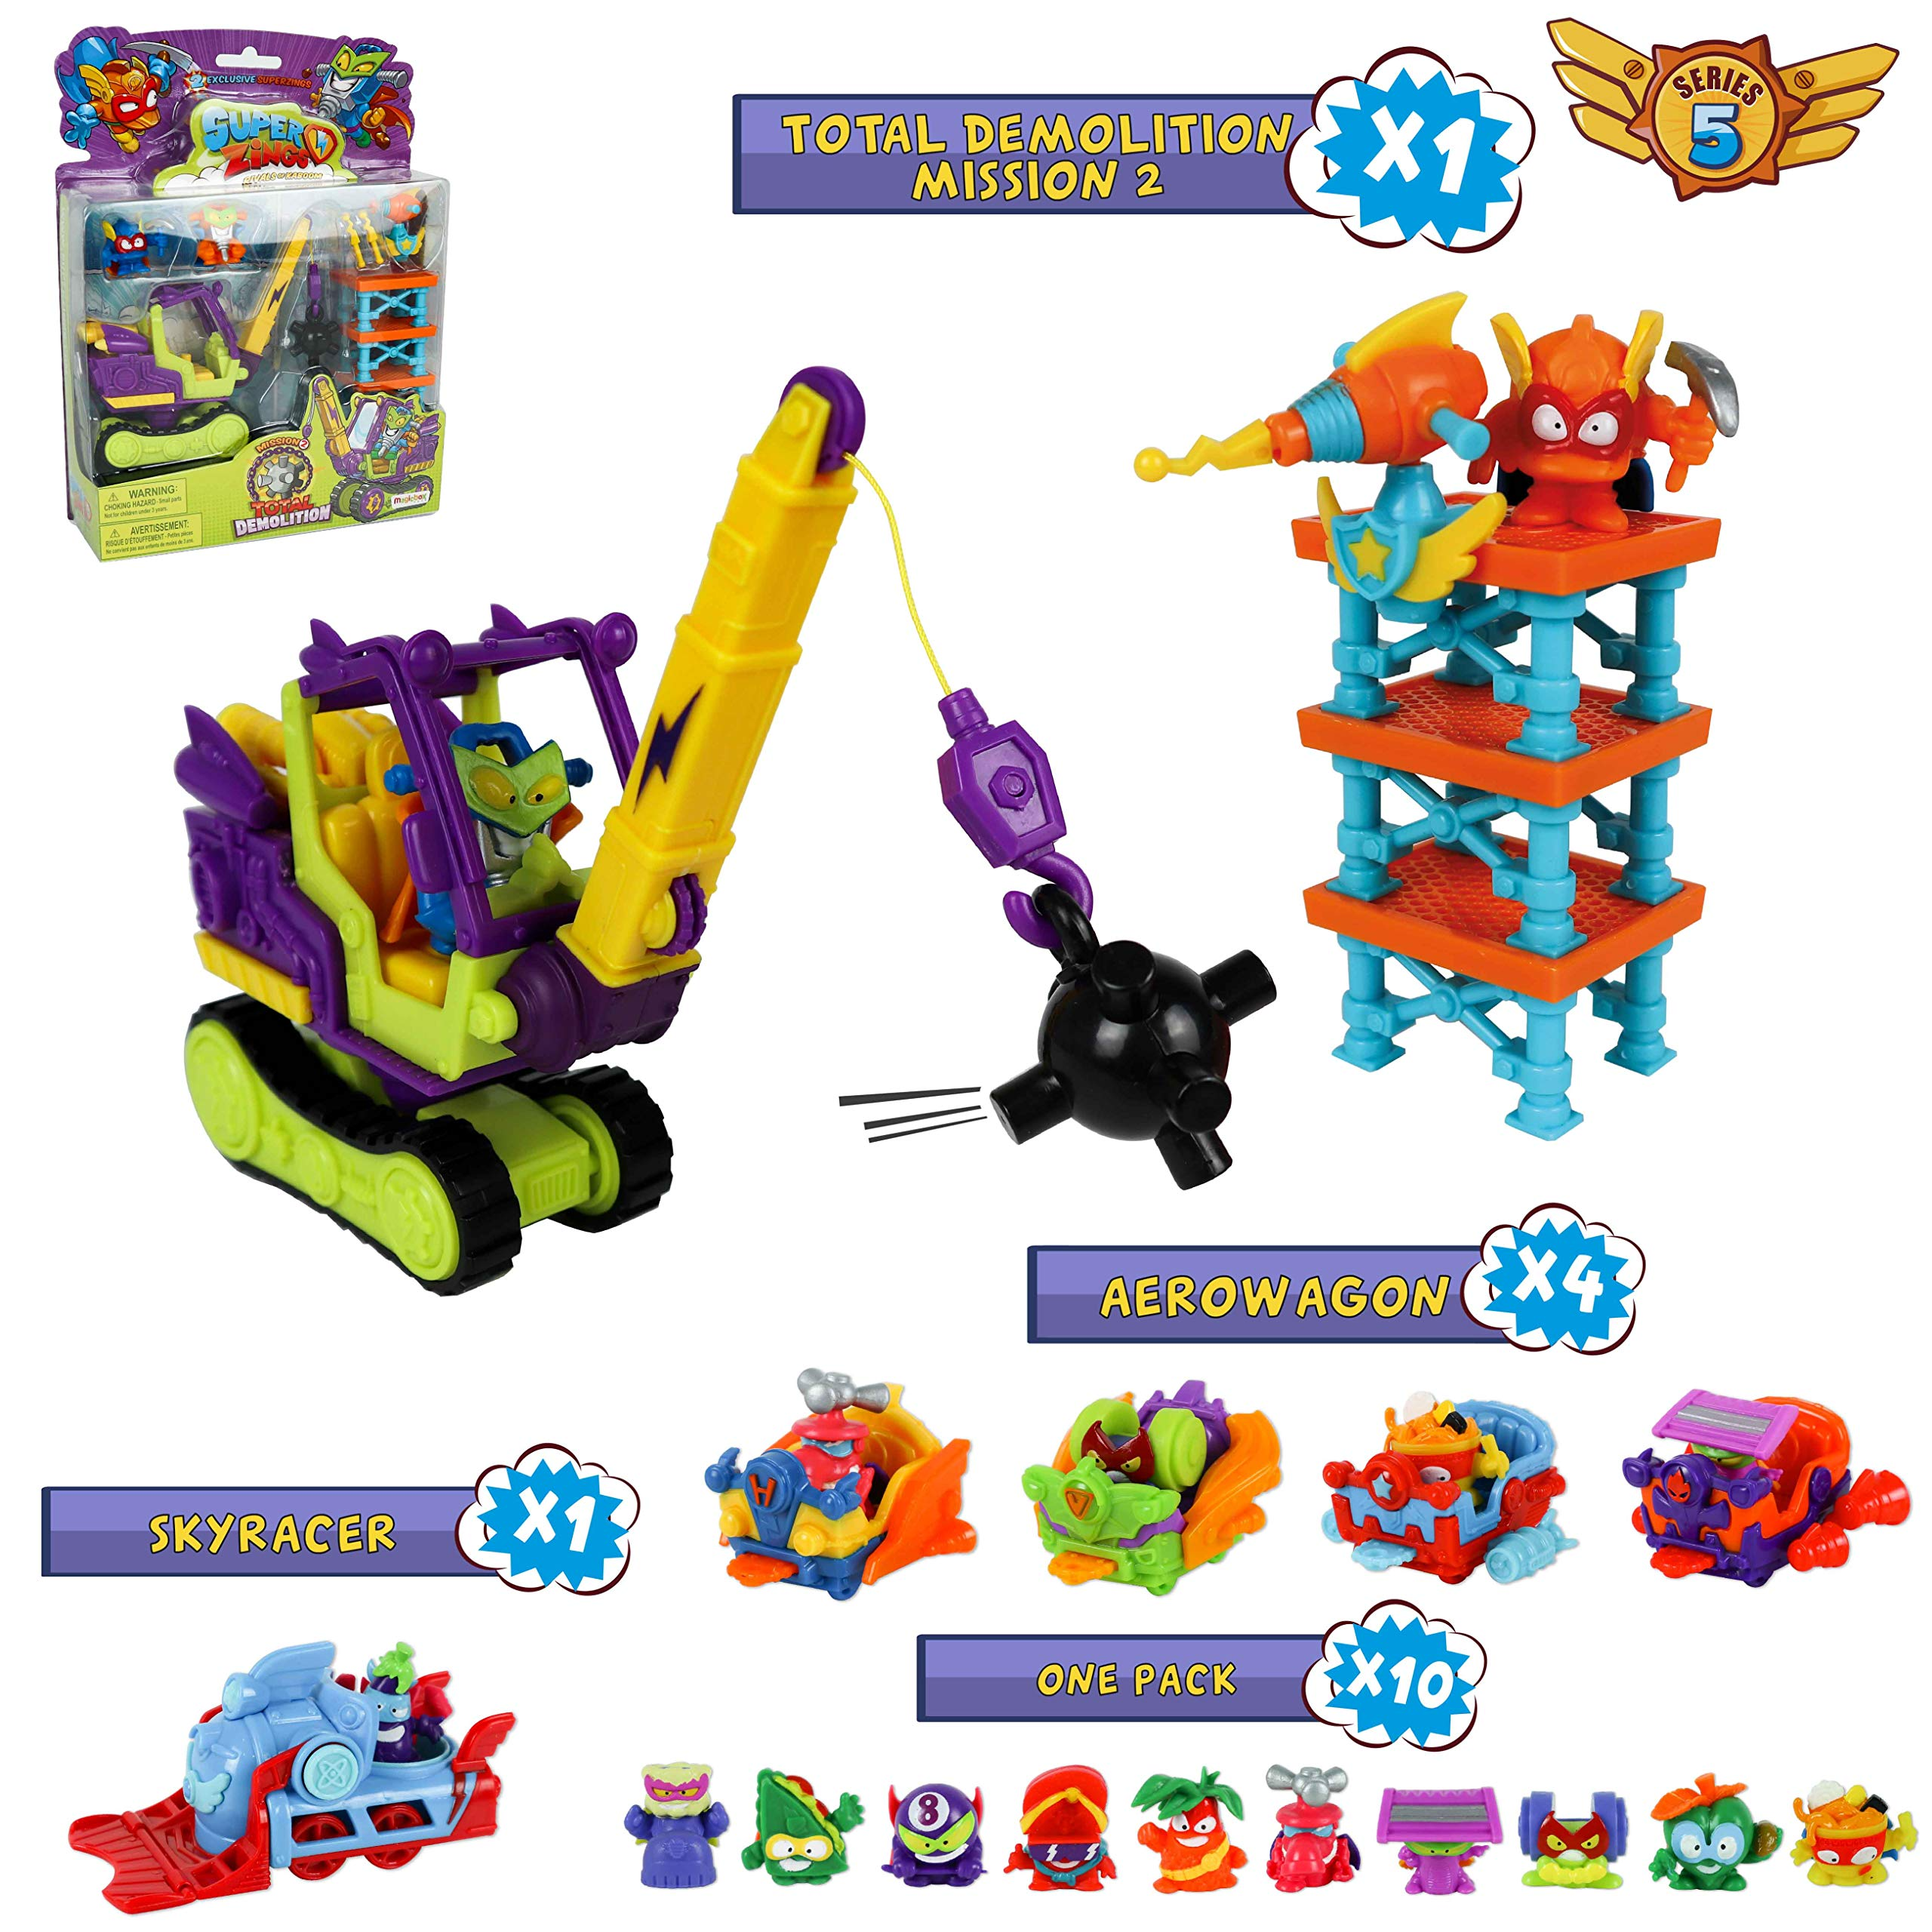 SuperZings Serie 5 - Total Demolition Mission 2 y Pack Sorpresa con 15 Sets | Contiene Blíster Total Demolition, 10 Sobres One Pack, 4 Aerowagons y 1 Skyracer | Juguetes y Regalos para Niños: Amazon.es: Juguetes y juegos